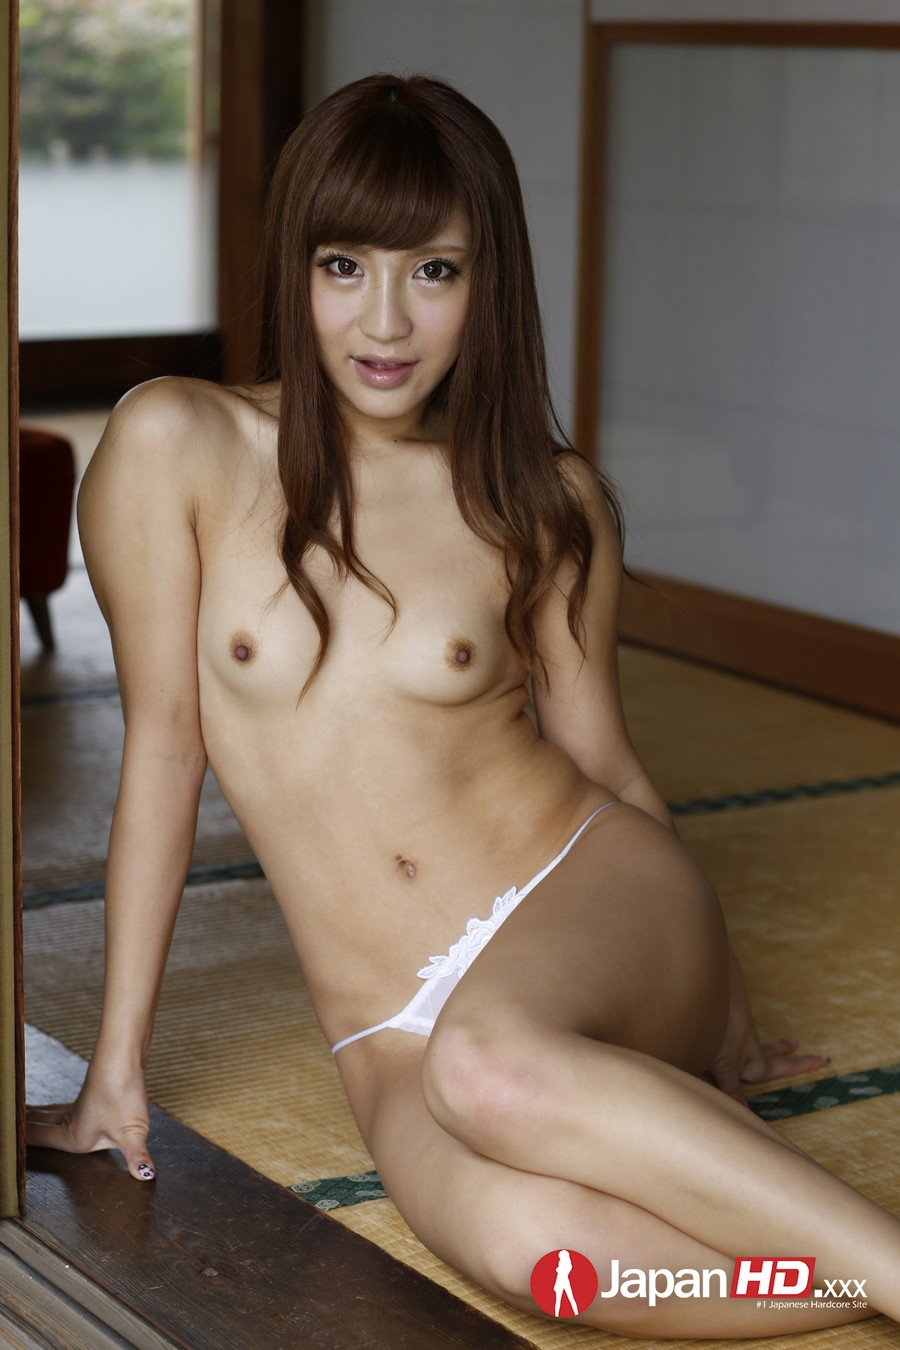 japanese hd nude